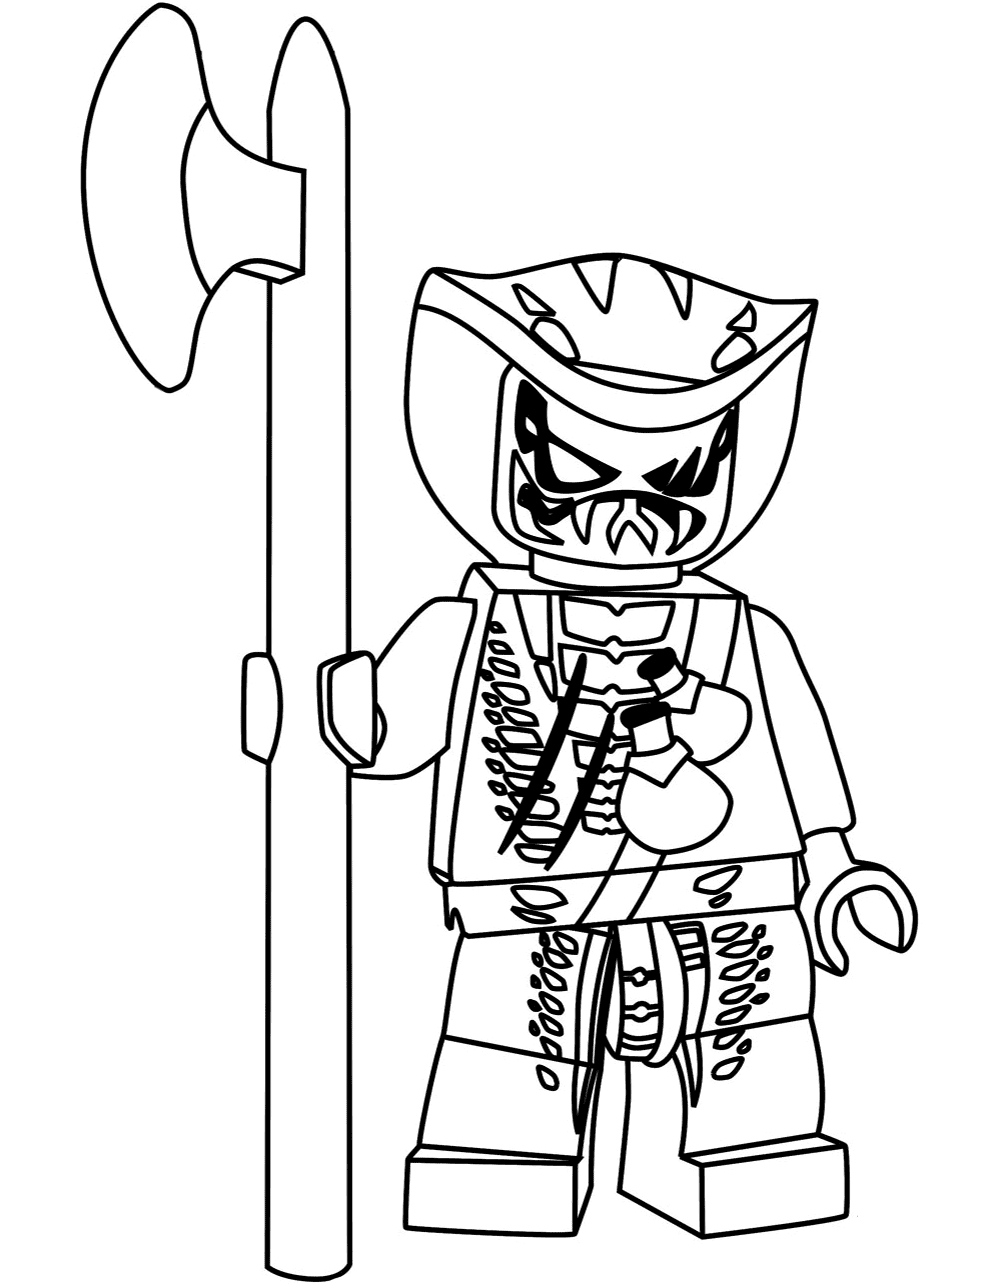 ninja robot coloring pages 17 best images about coloring pages on pinterest gi joe robot pages coloring ninja